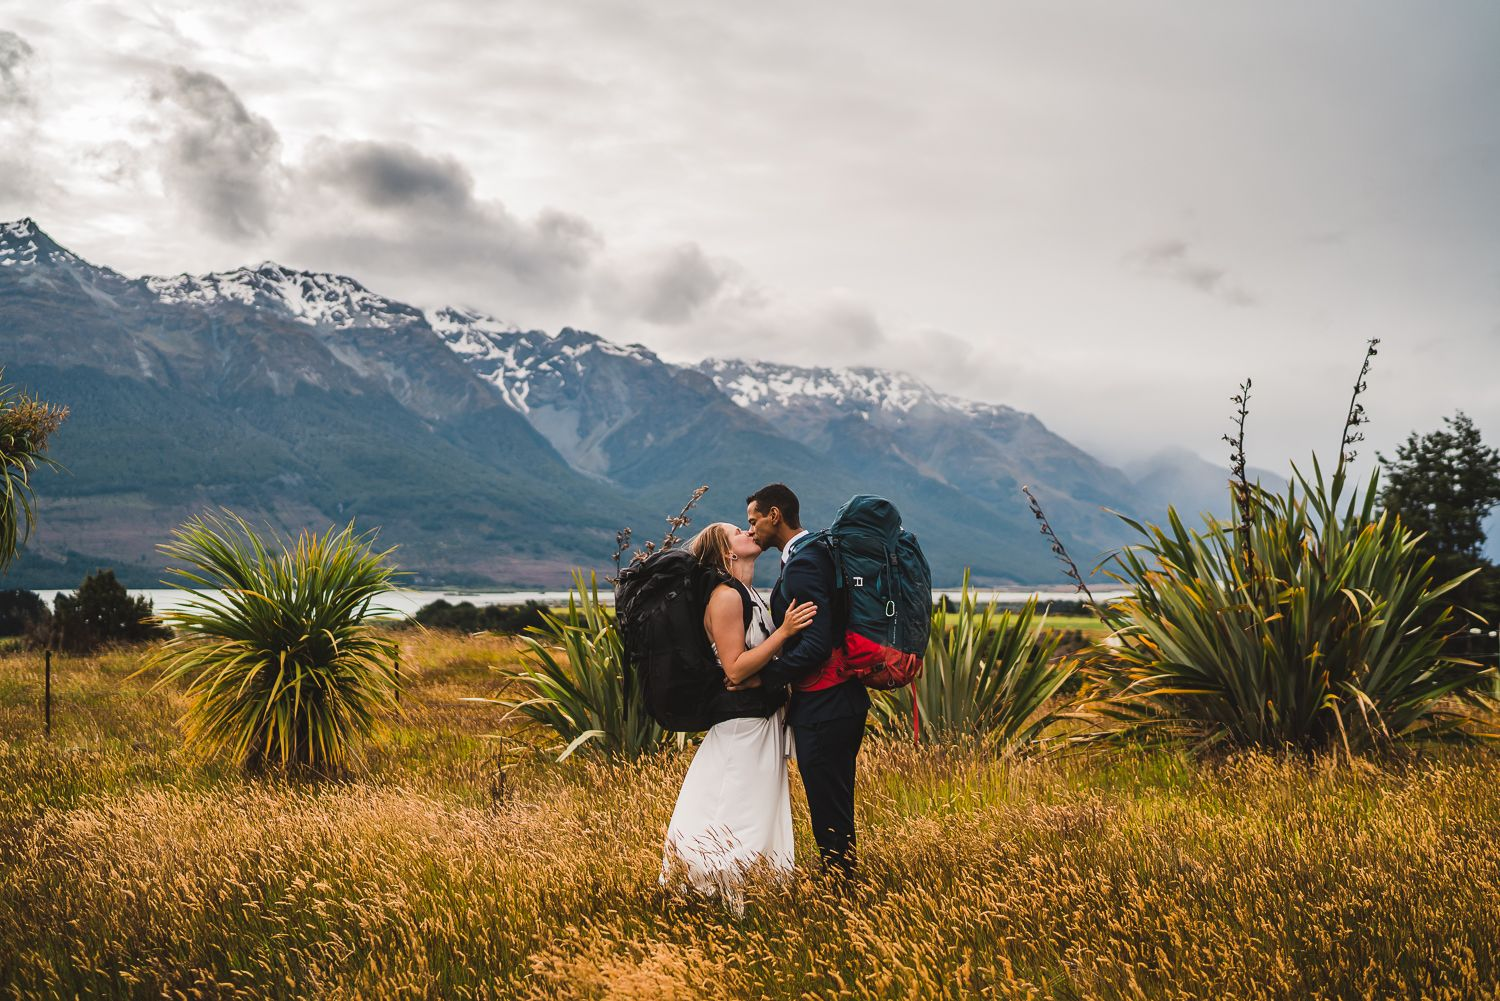 Photographer Maria Karlsson Swedish Adventure Elopement Couple and mountains New Zealand hiking backpacks